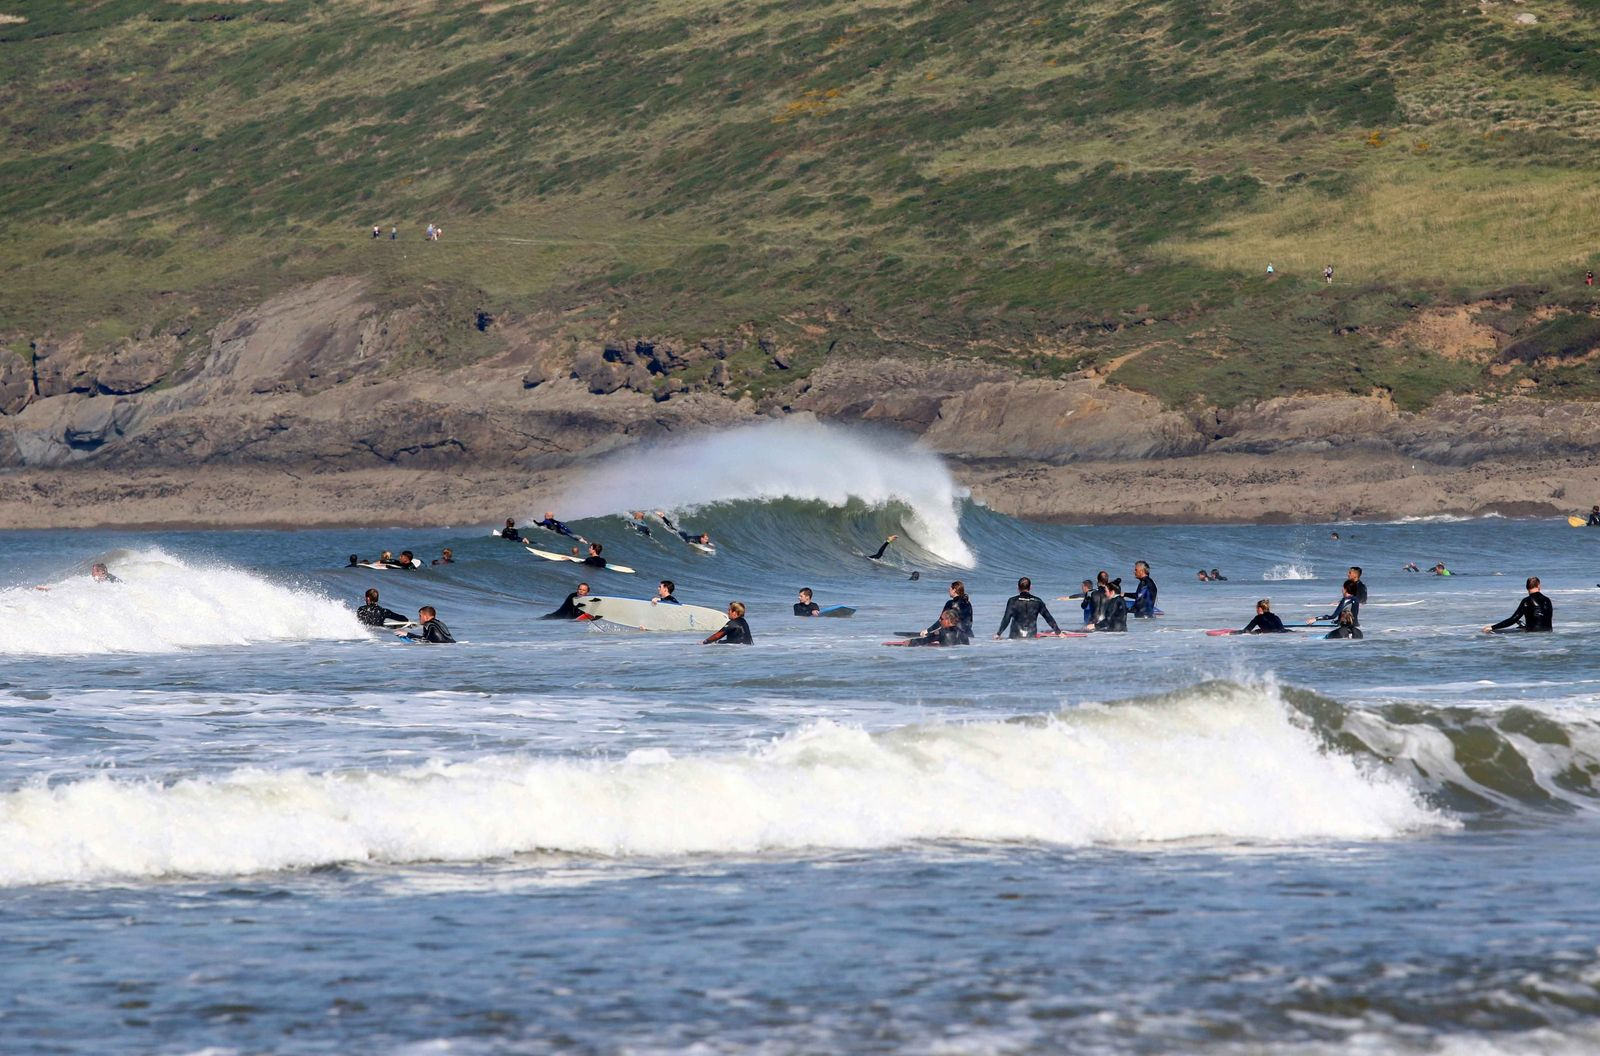 The seaside village of Croyde in North Devon is among the UK's most popular surfing spots.